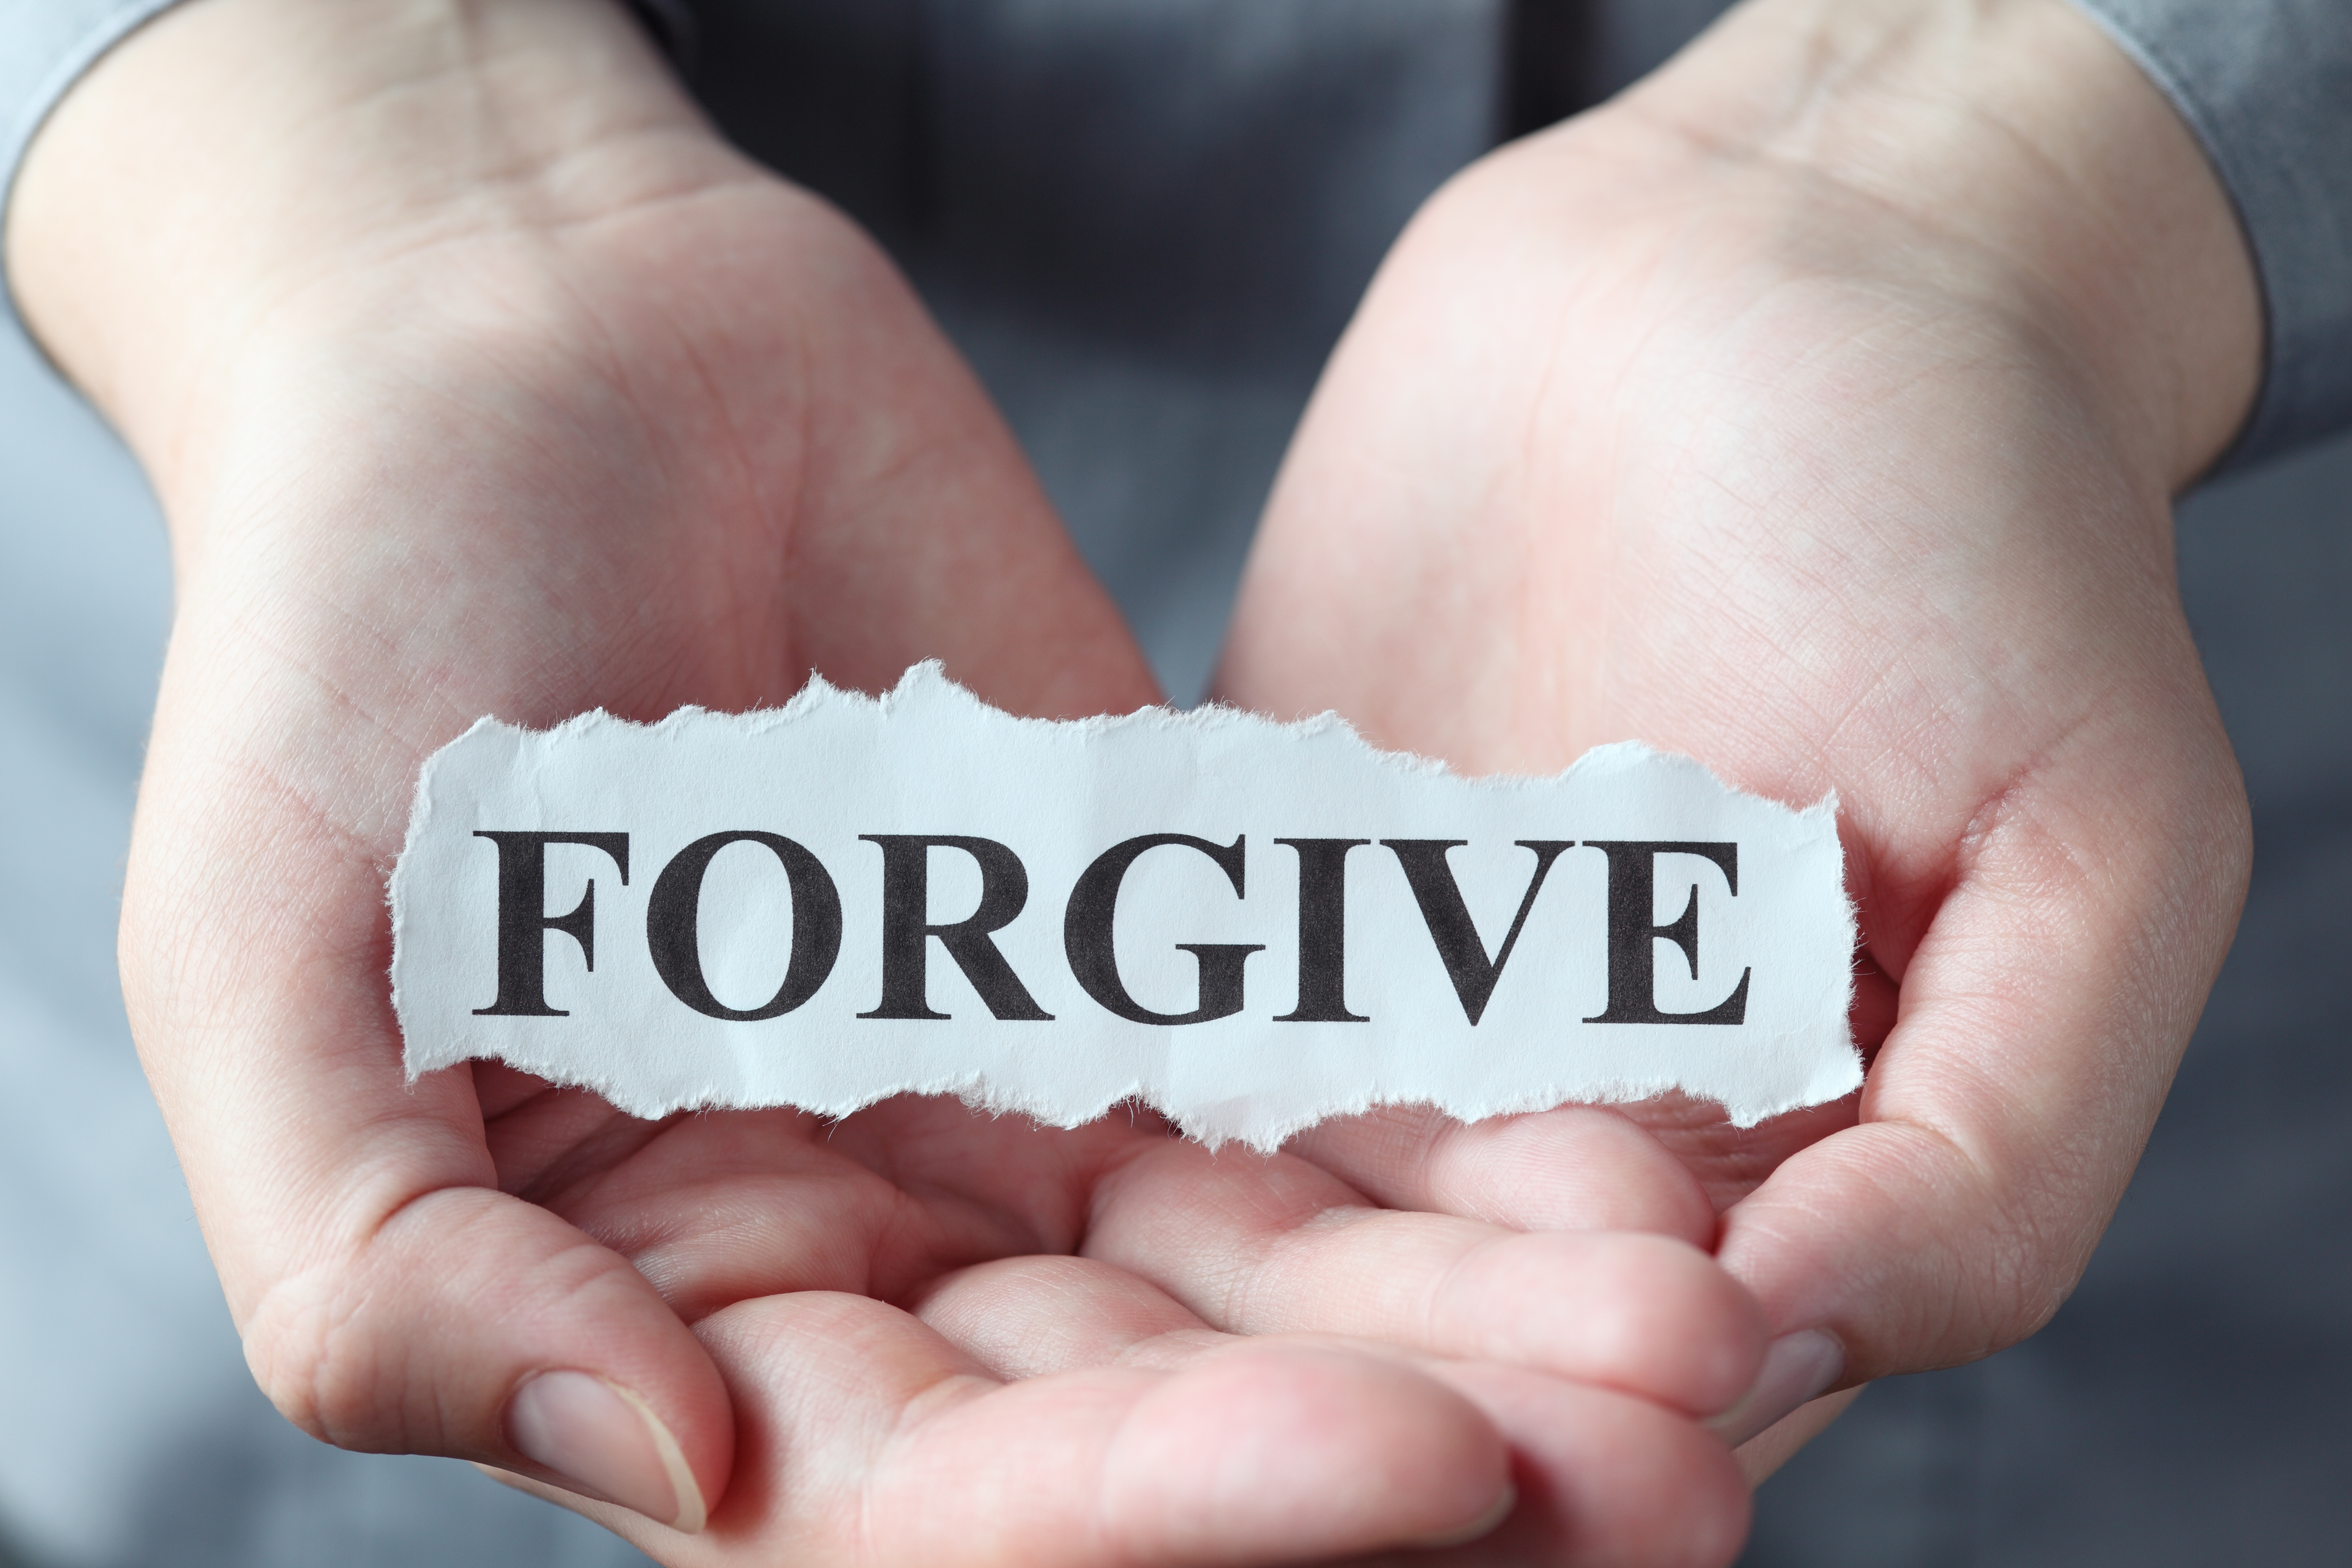 Forgive image SheBeWell Health Coaching